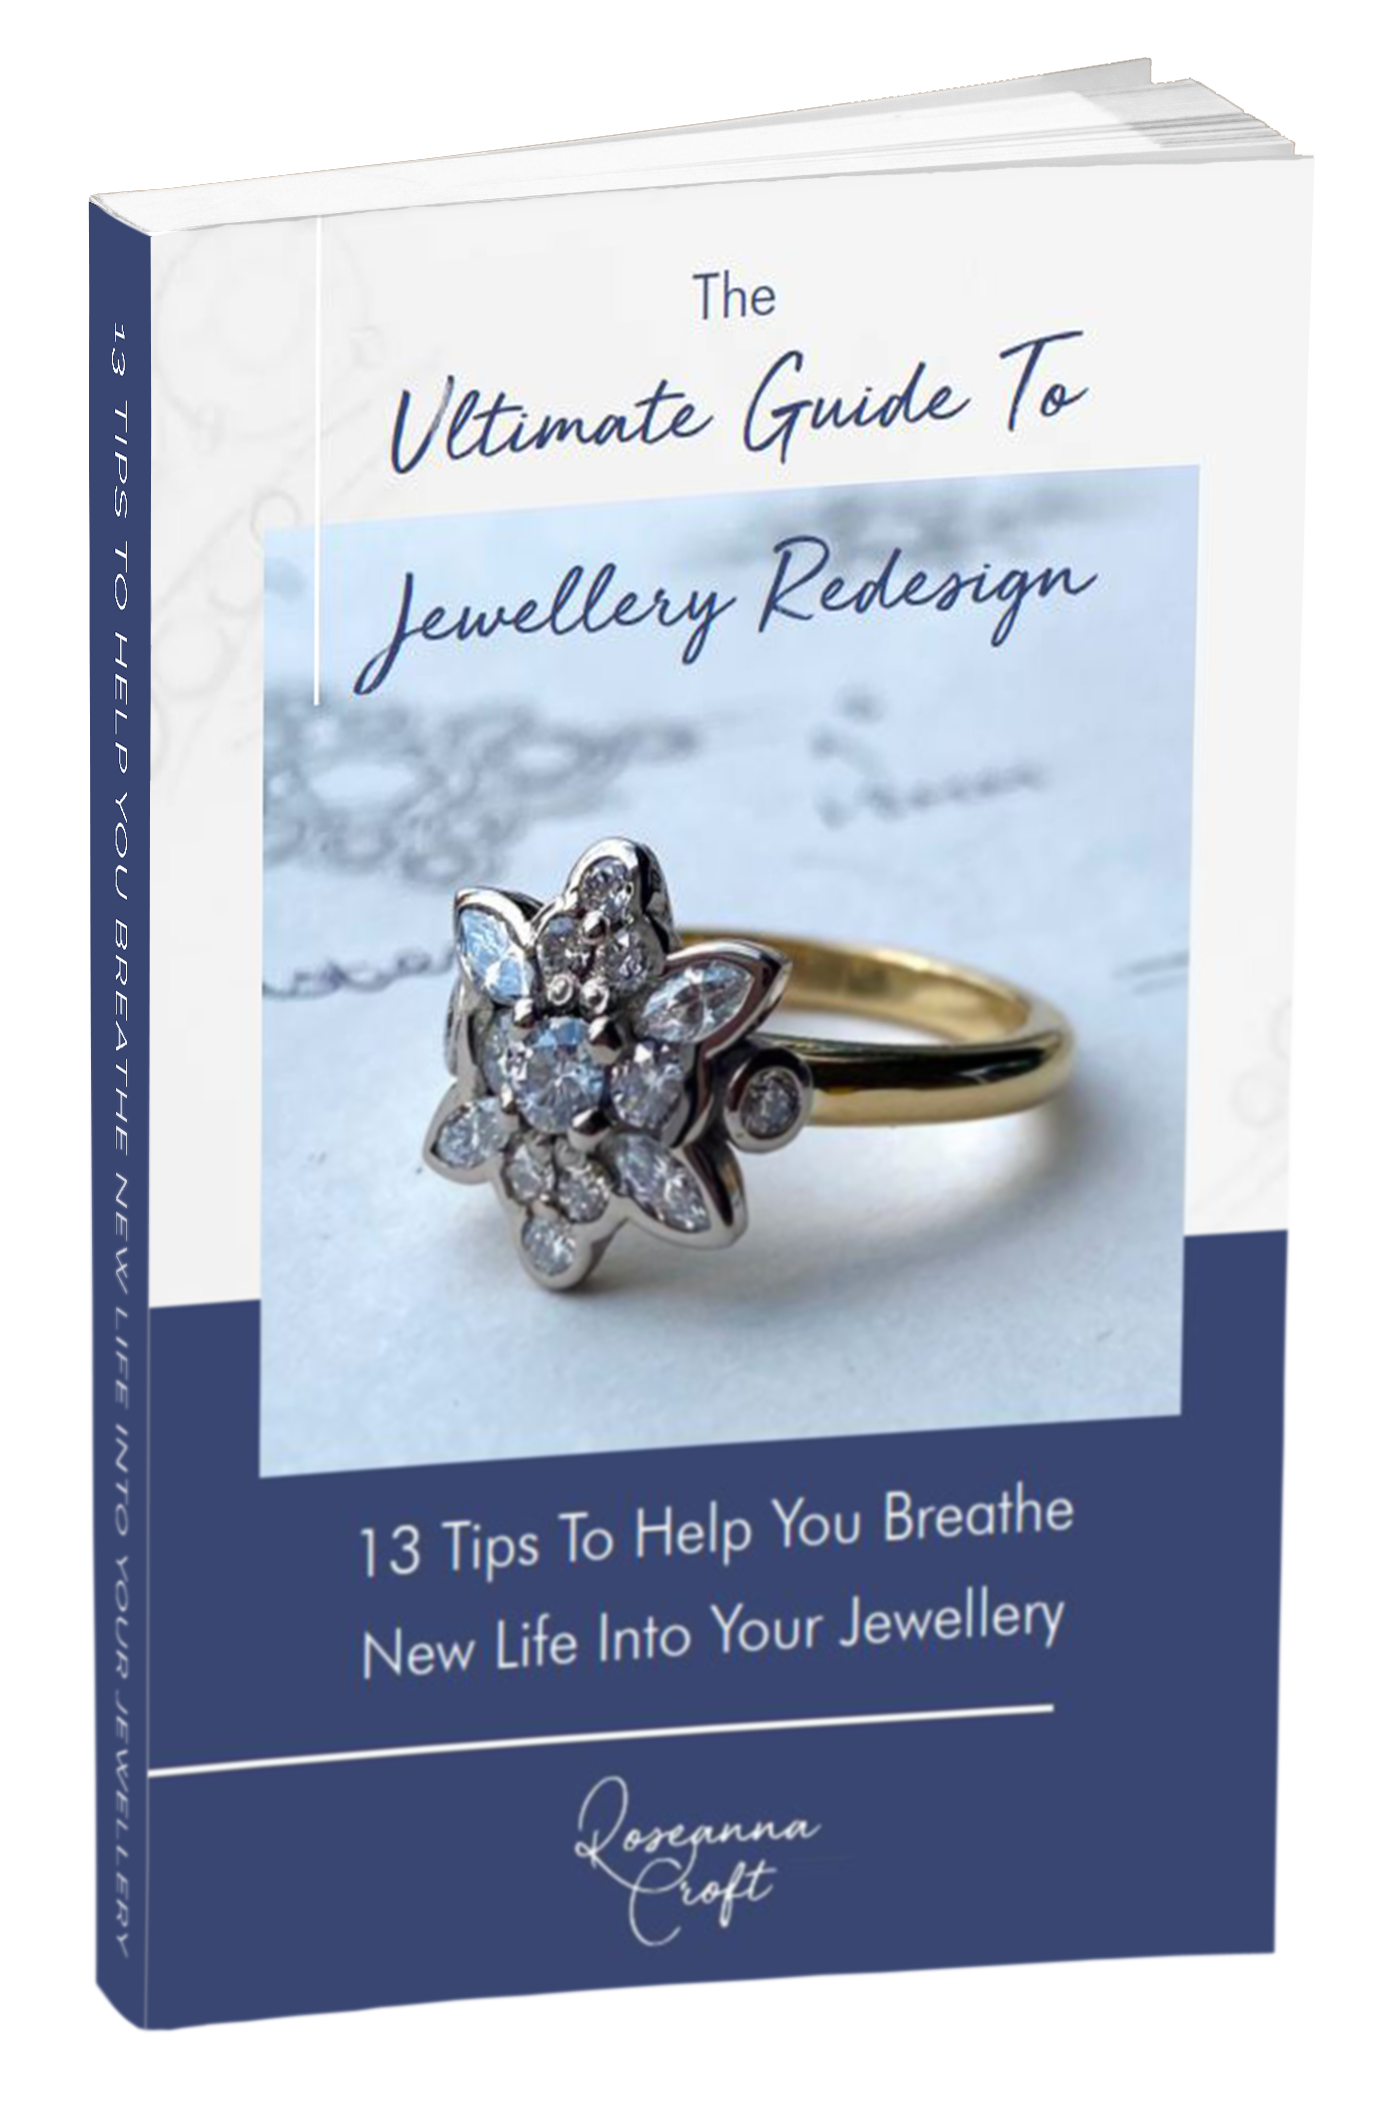 breathe-new-life-into-jewellery-roseanna-guide-mock-up-2